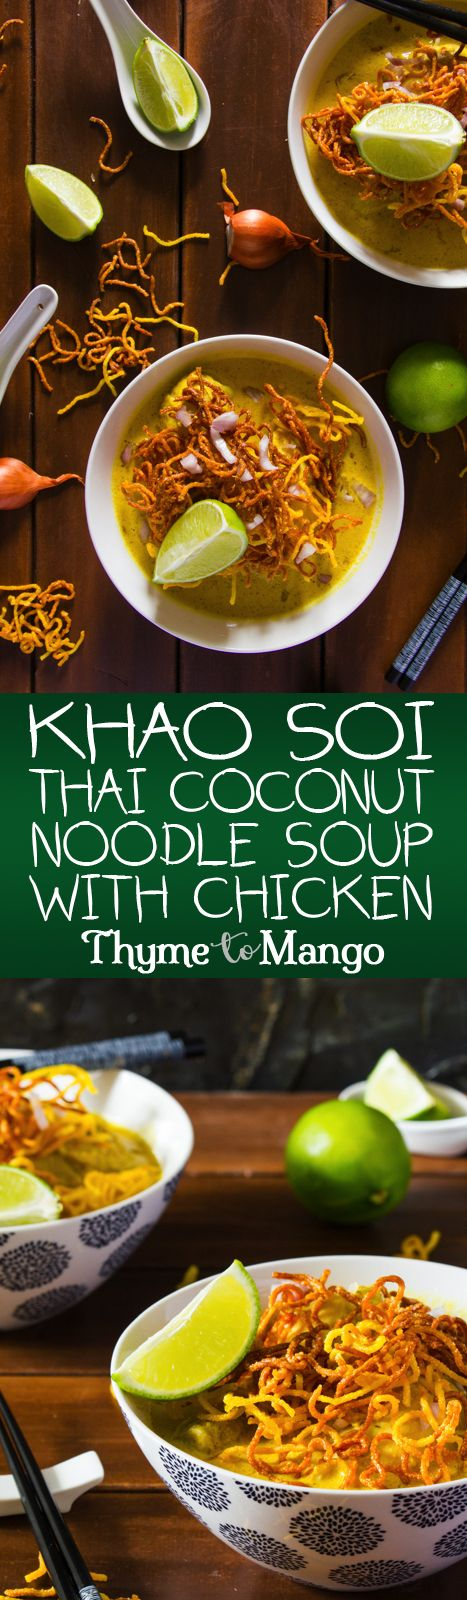 Bask in the aromas of Northern Thailand with this quick and easy Khao Soi Recipe